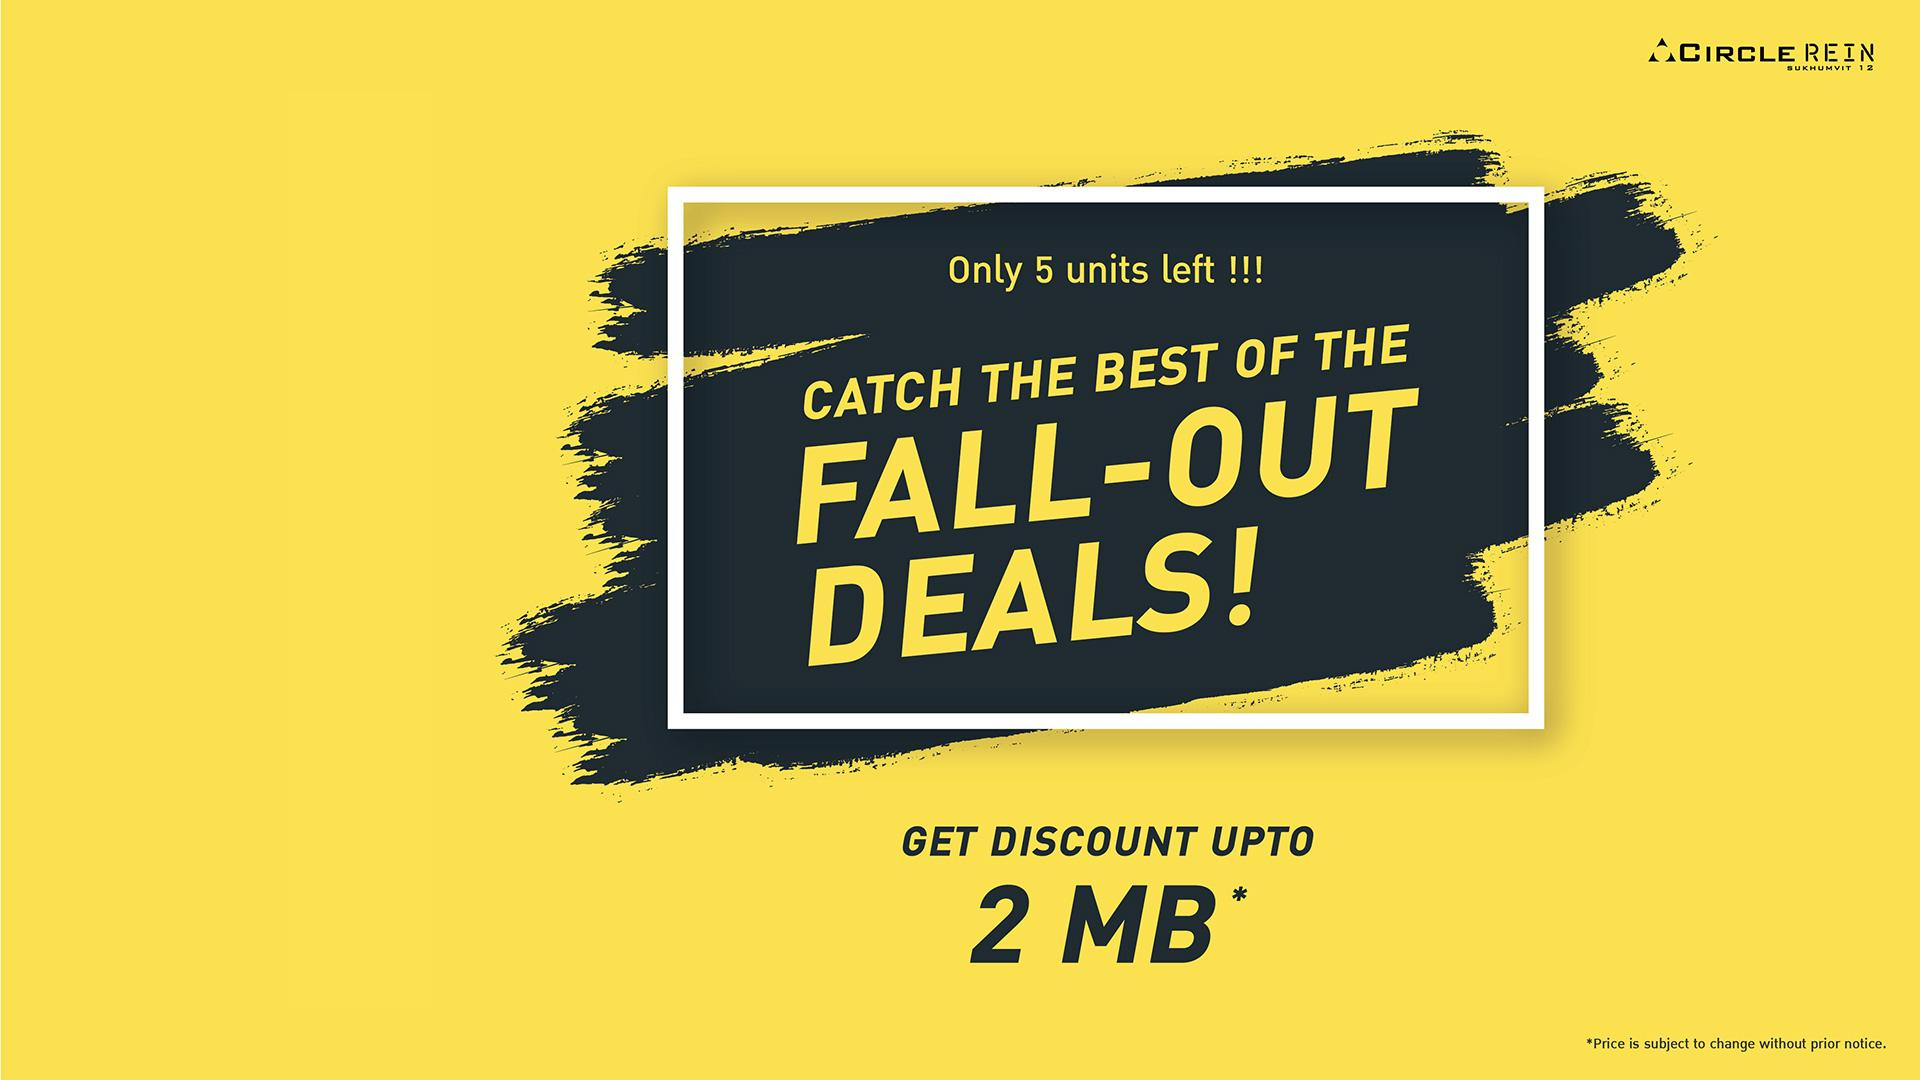 Fall-out deals